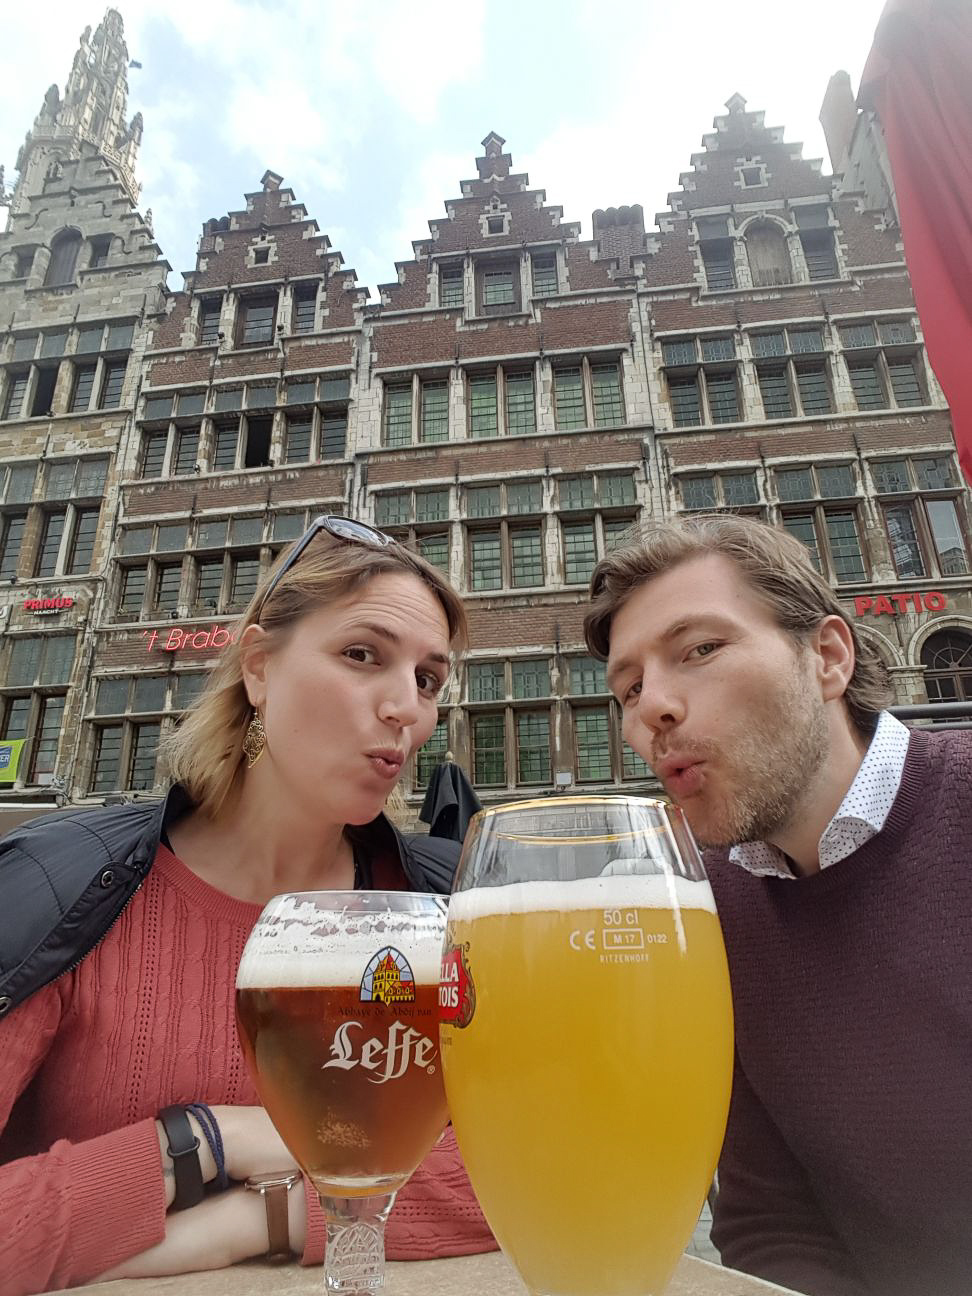 Leffe at Grote Markt